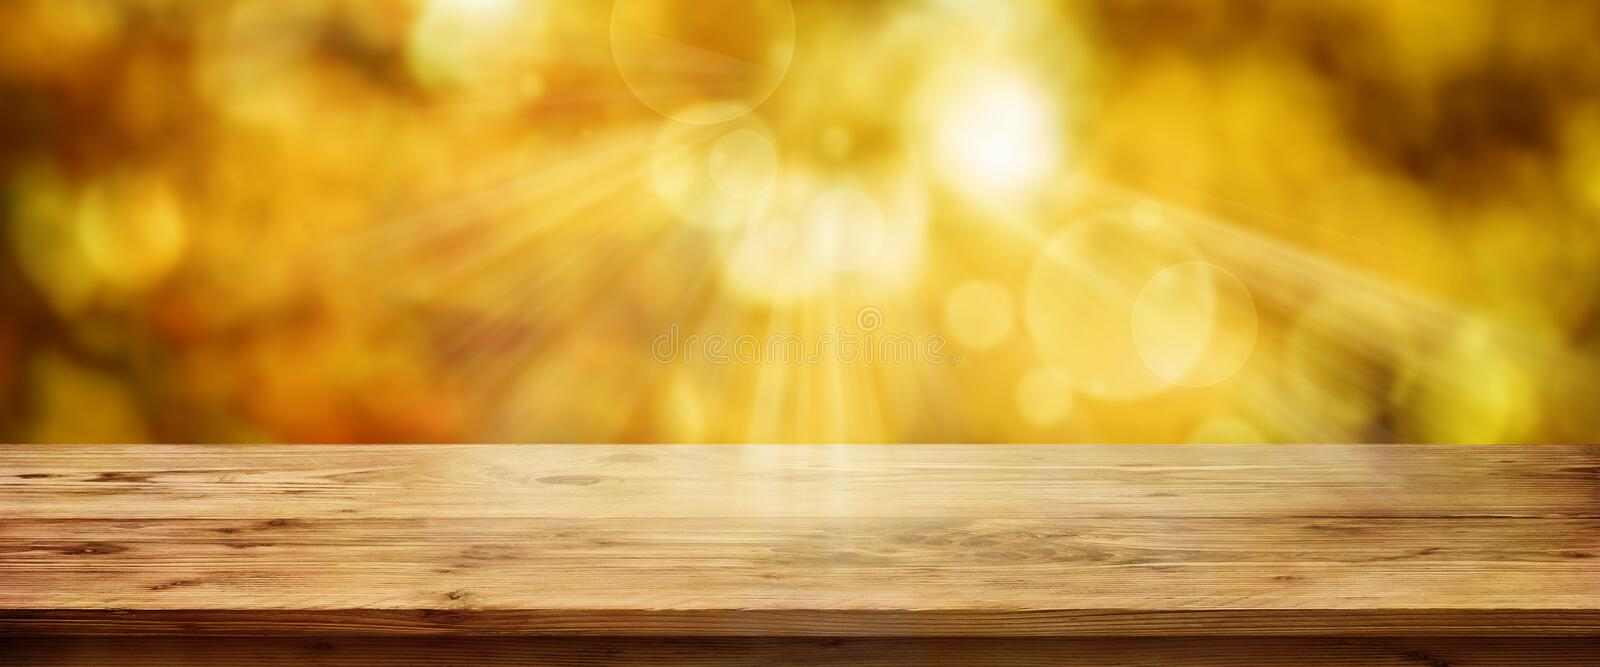 Golden autumn background with table royalty free stock photography